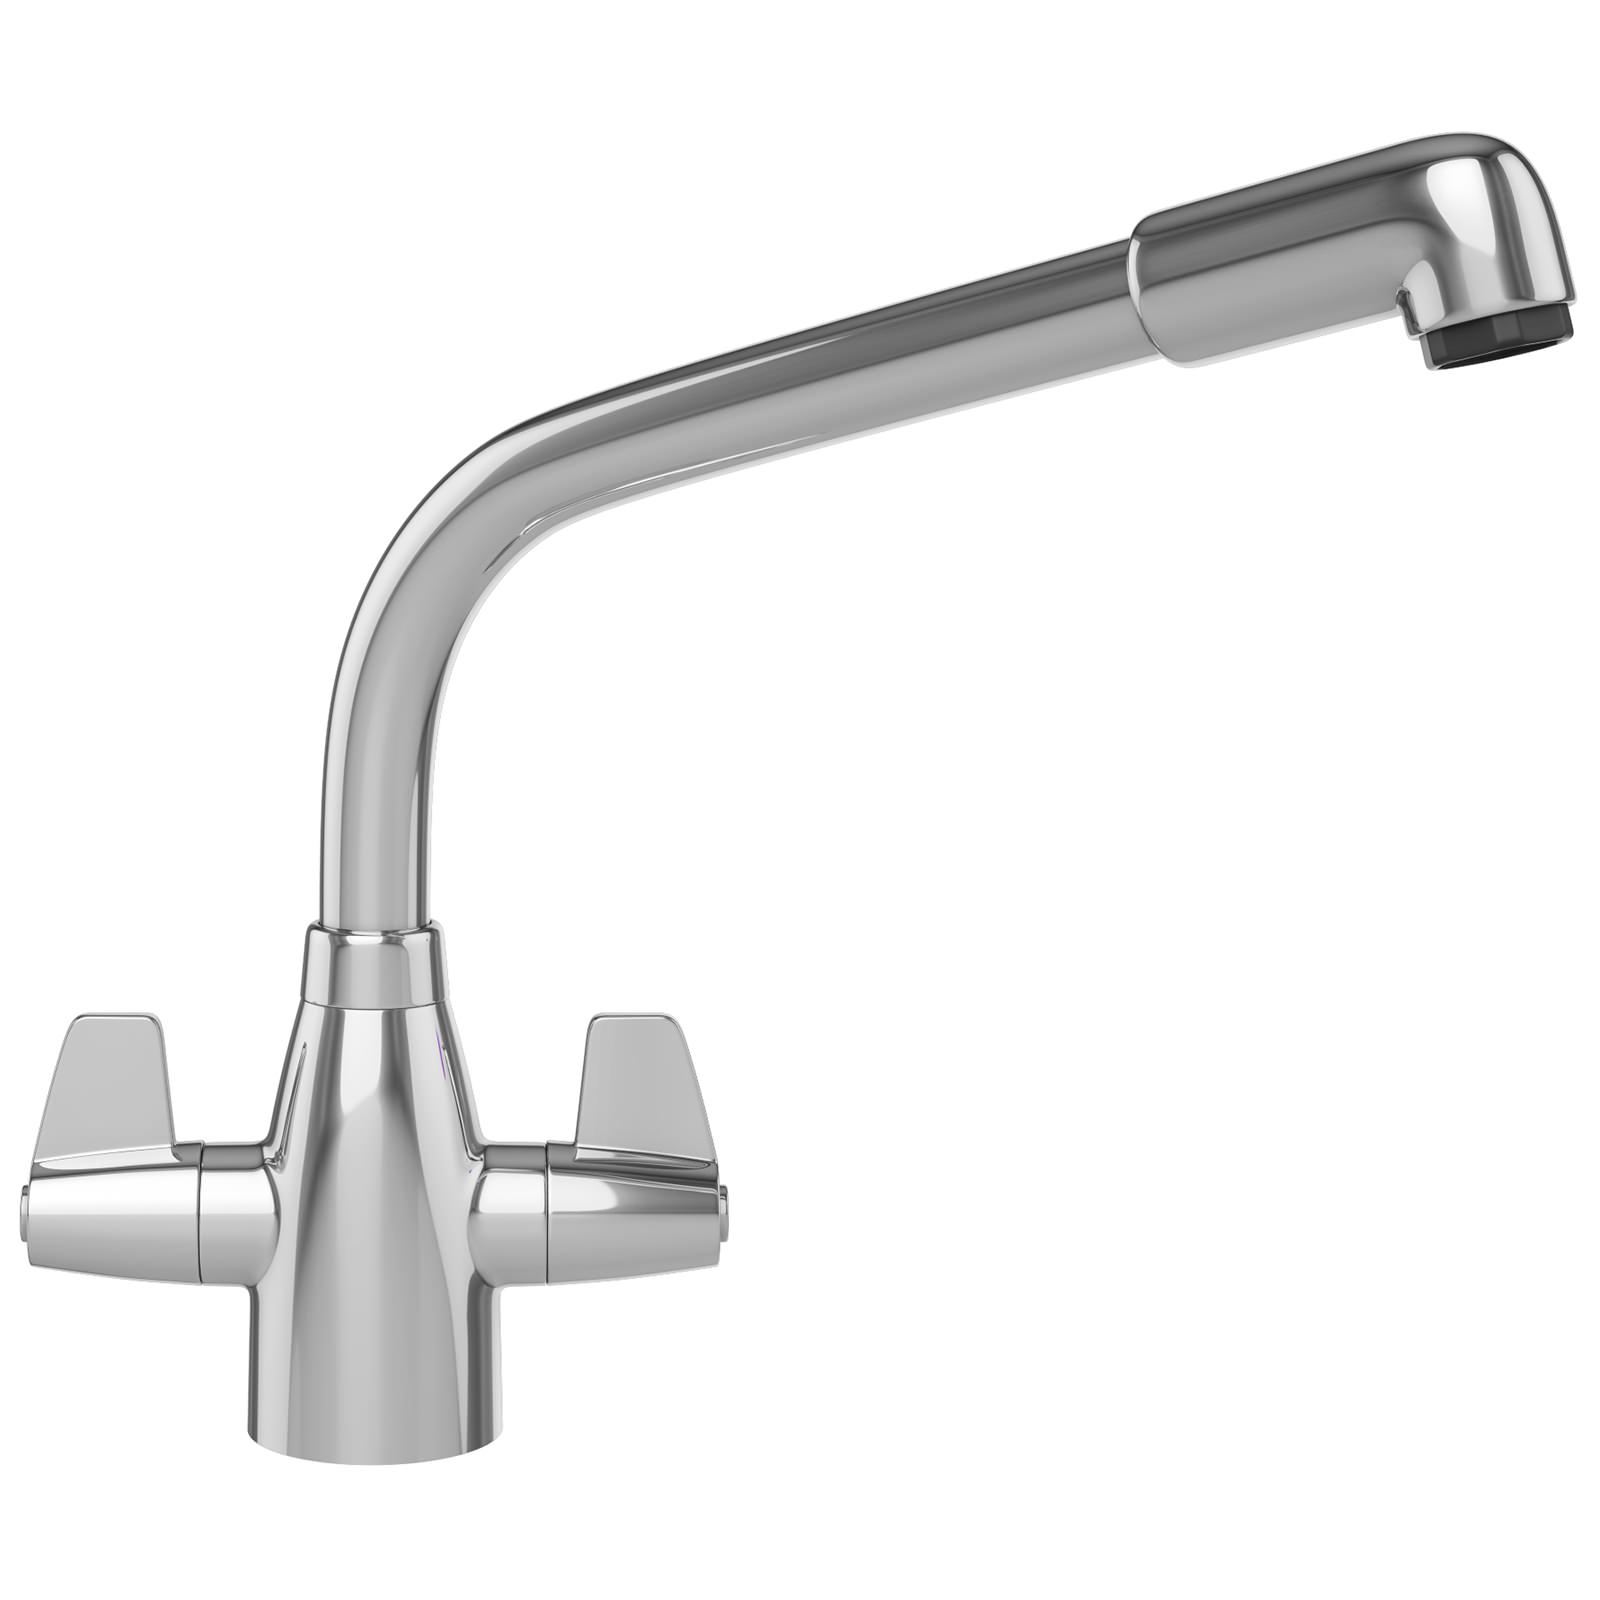 Awesome Taps Uk Kitchen Sinks Part - 13: Franke Davos Kitchen Sink Mixer Tap Chrome